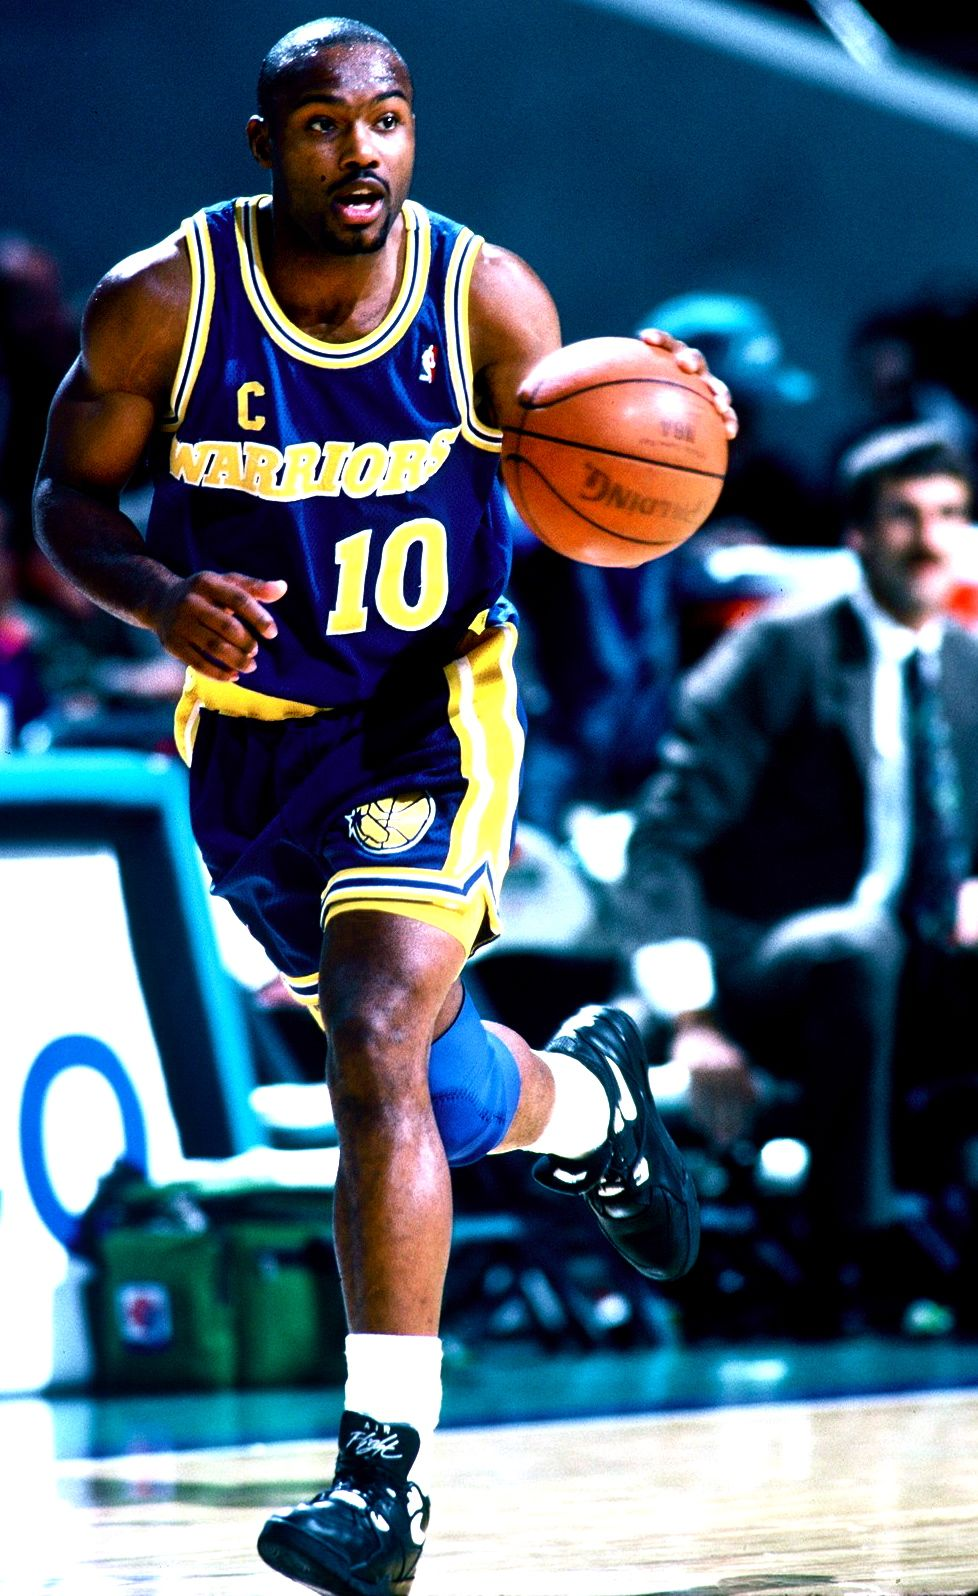 fb7a26522b8 Back in the day I was a huge GS Warriors fan. Tim Hardaway was my guy. Long  live Run TMC.